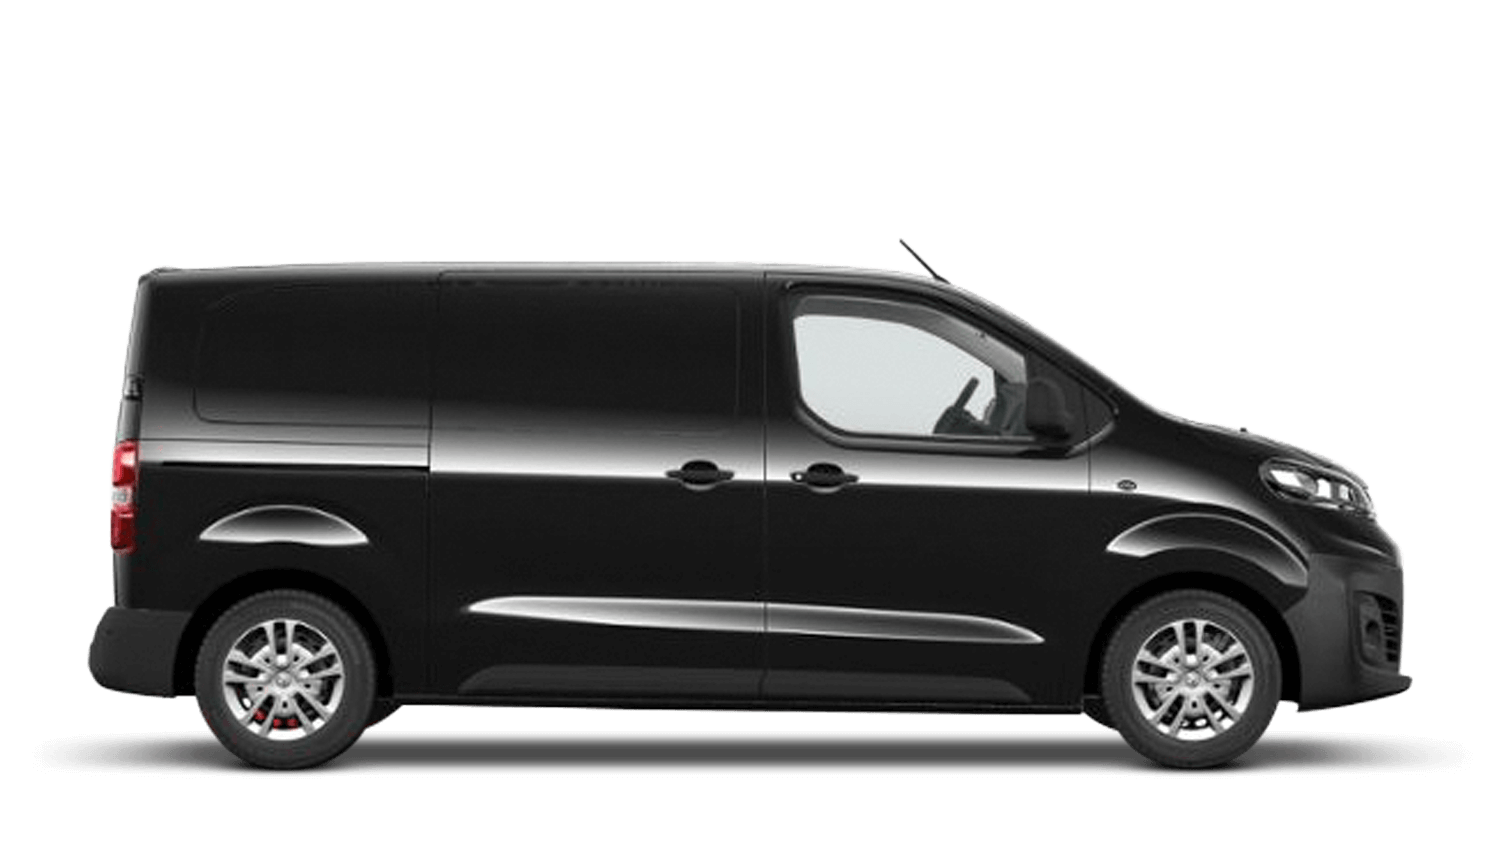 Diamond Black (Metallic) Vauxhall Vivaro E